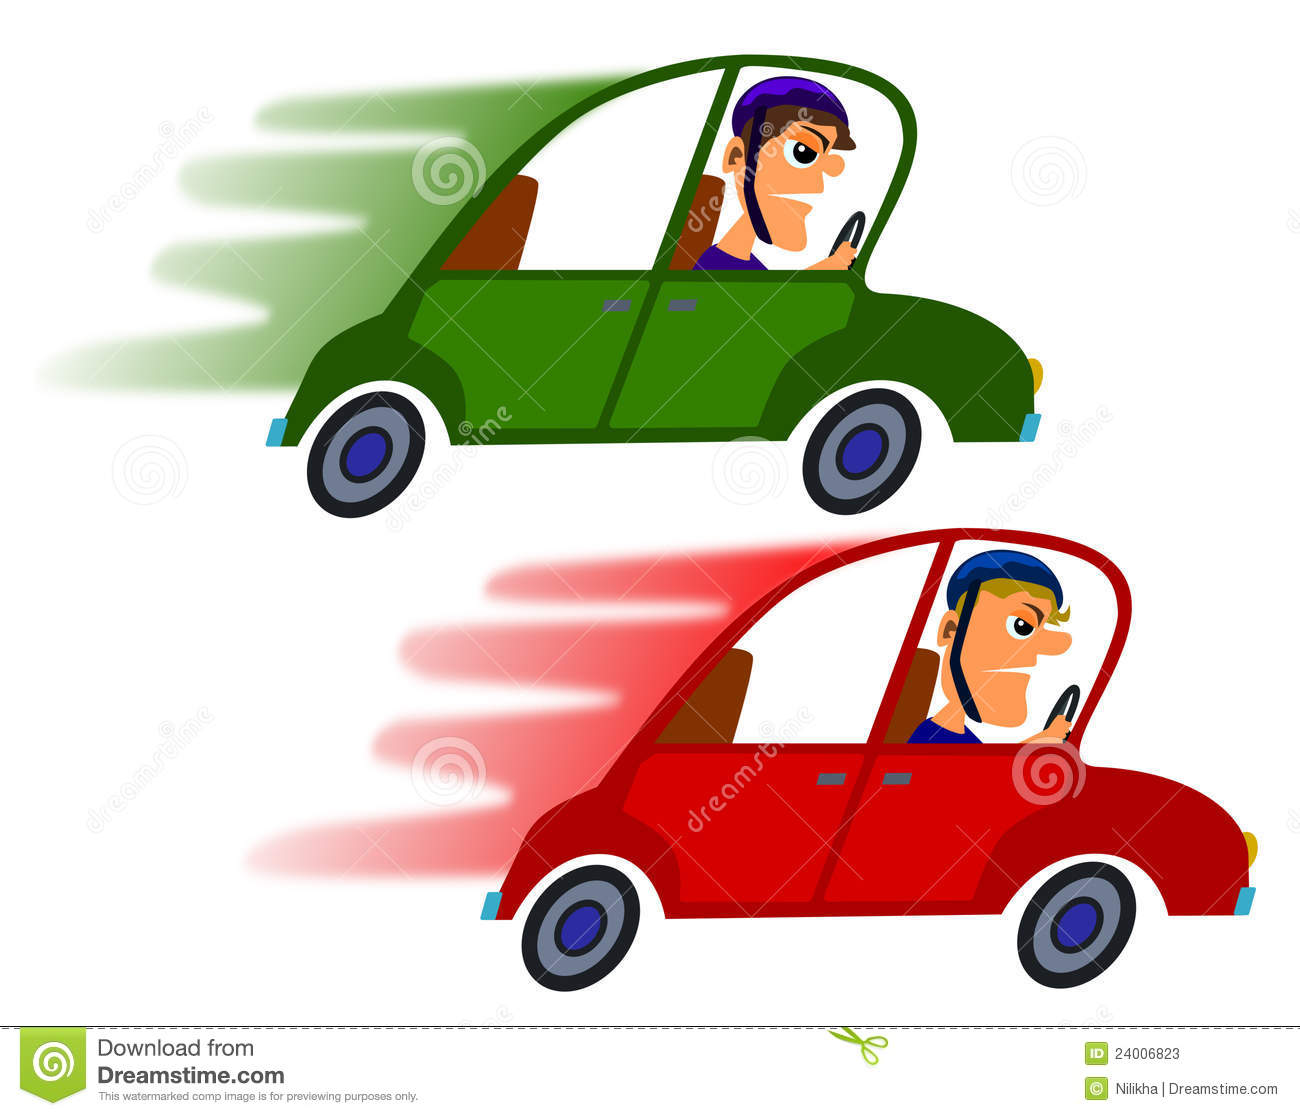 2 cars racing clipart vector free library Pictures Of A Race Car | Free download best Pictures Of A Race Car ... vector free library